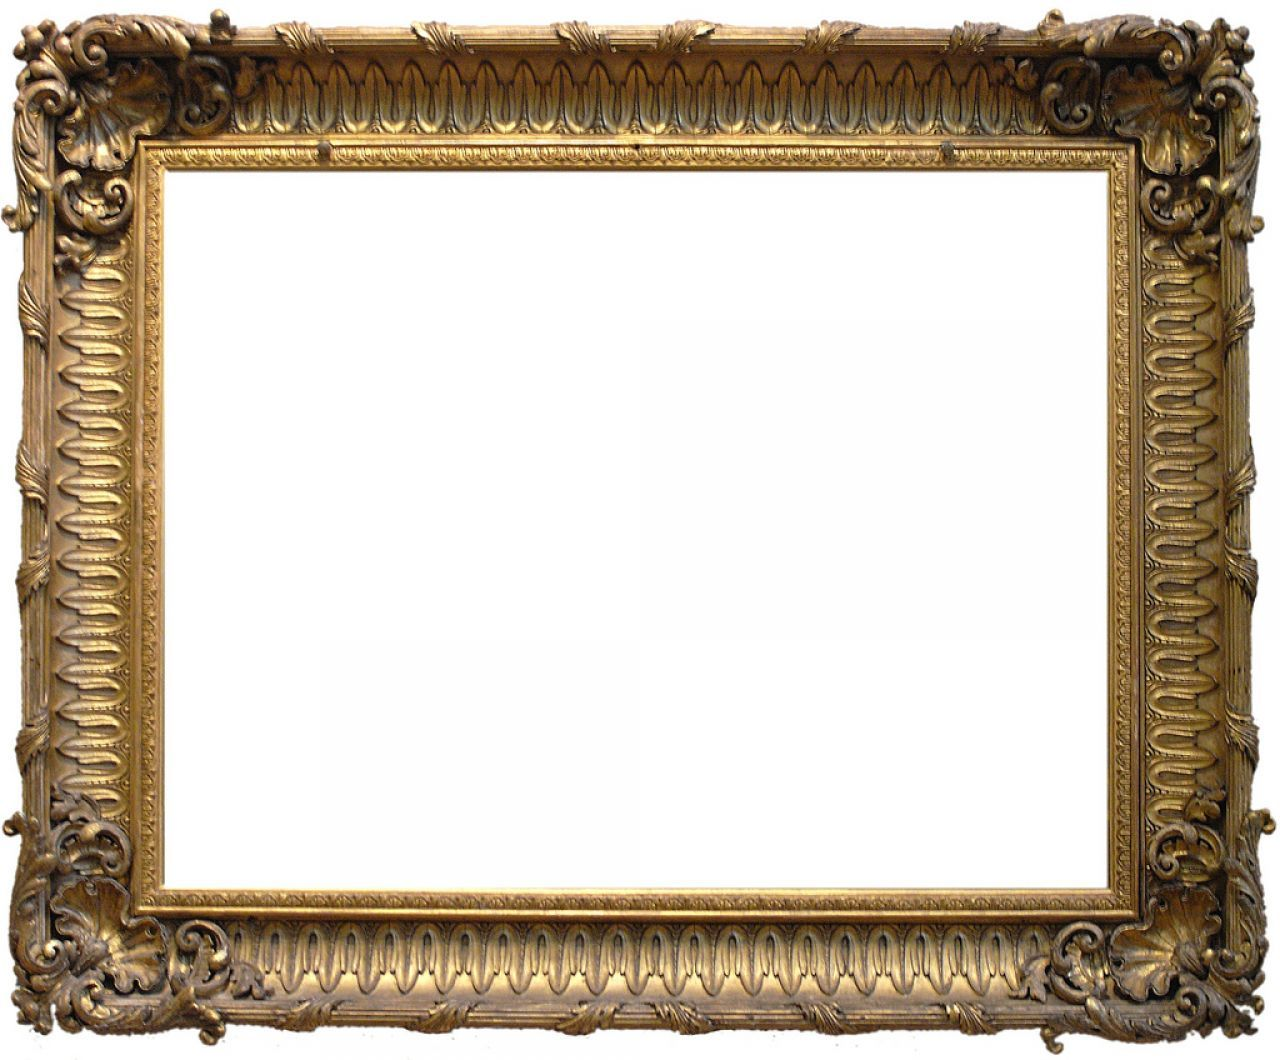 simple design for ornate gold frame border with